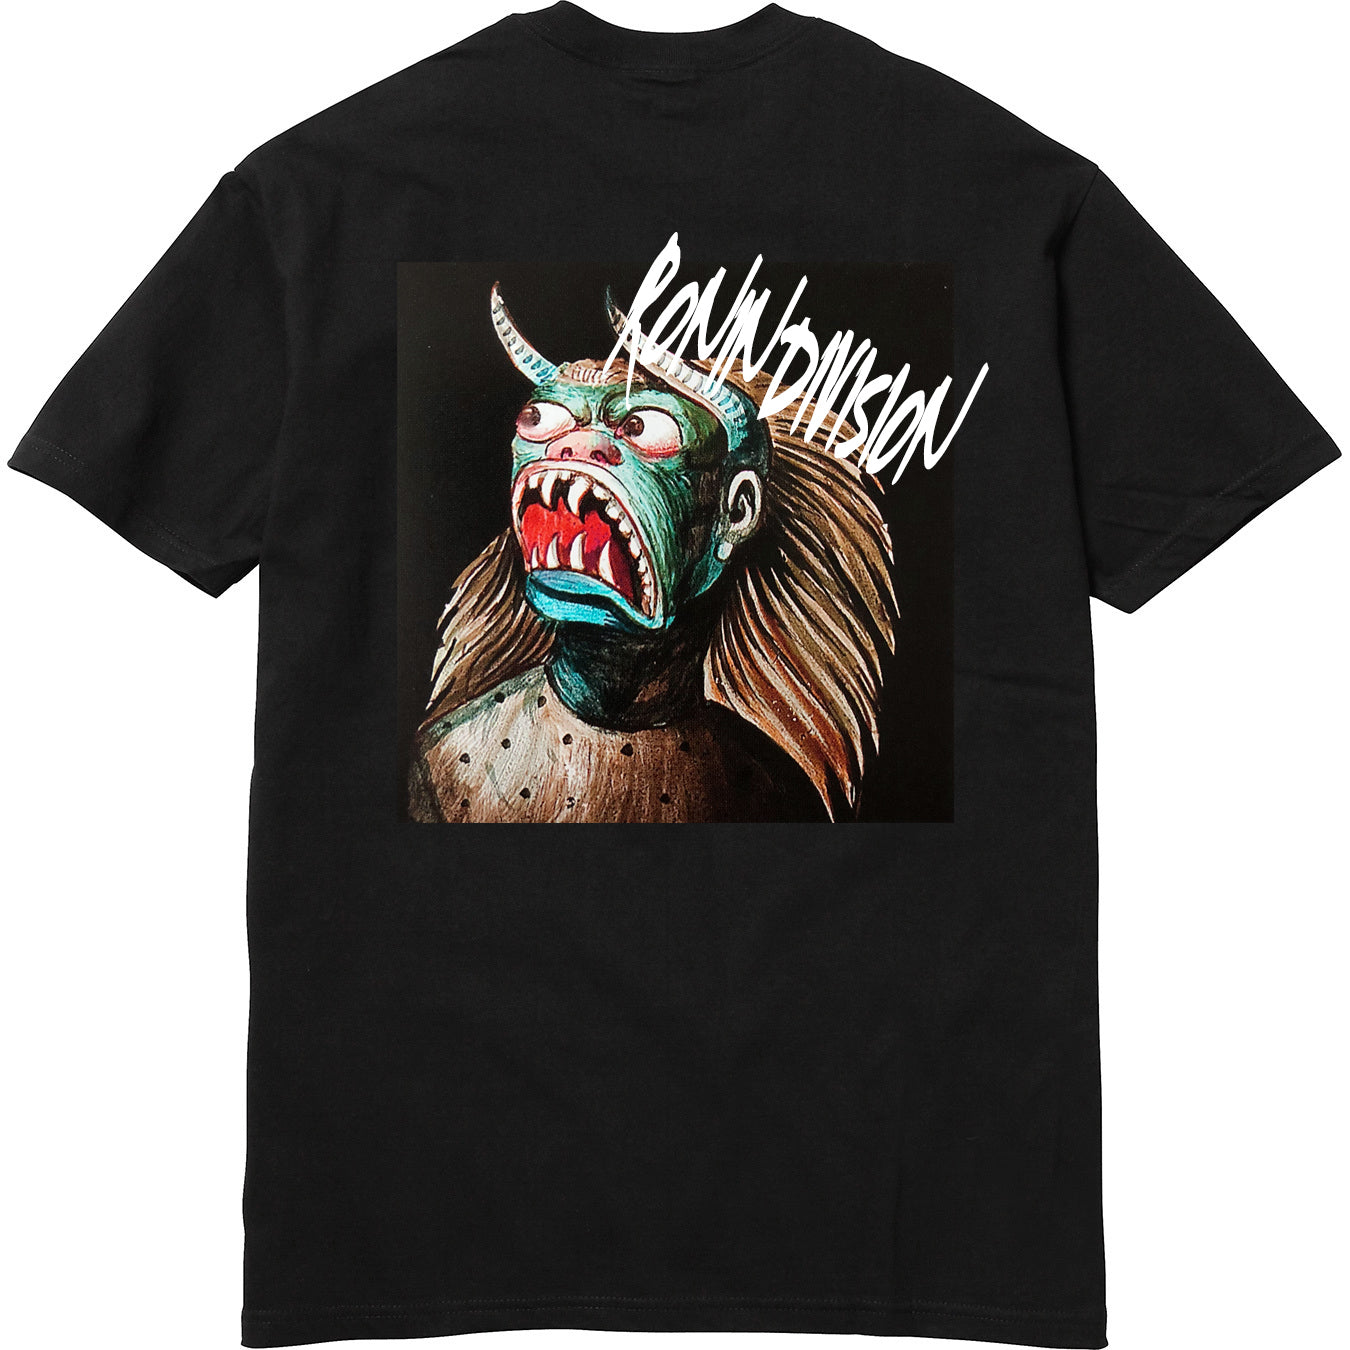 Phantasmagoria Tee - Black